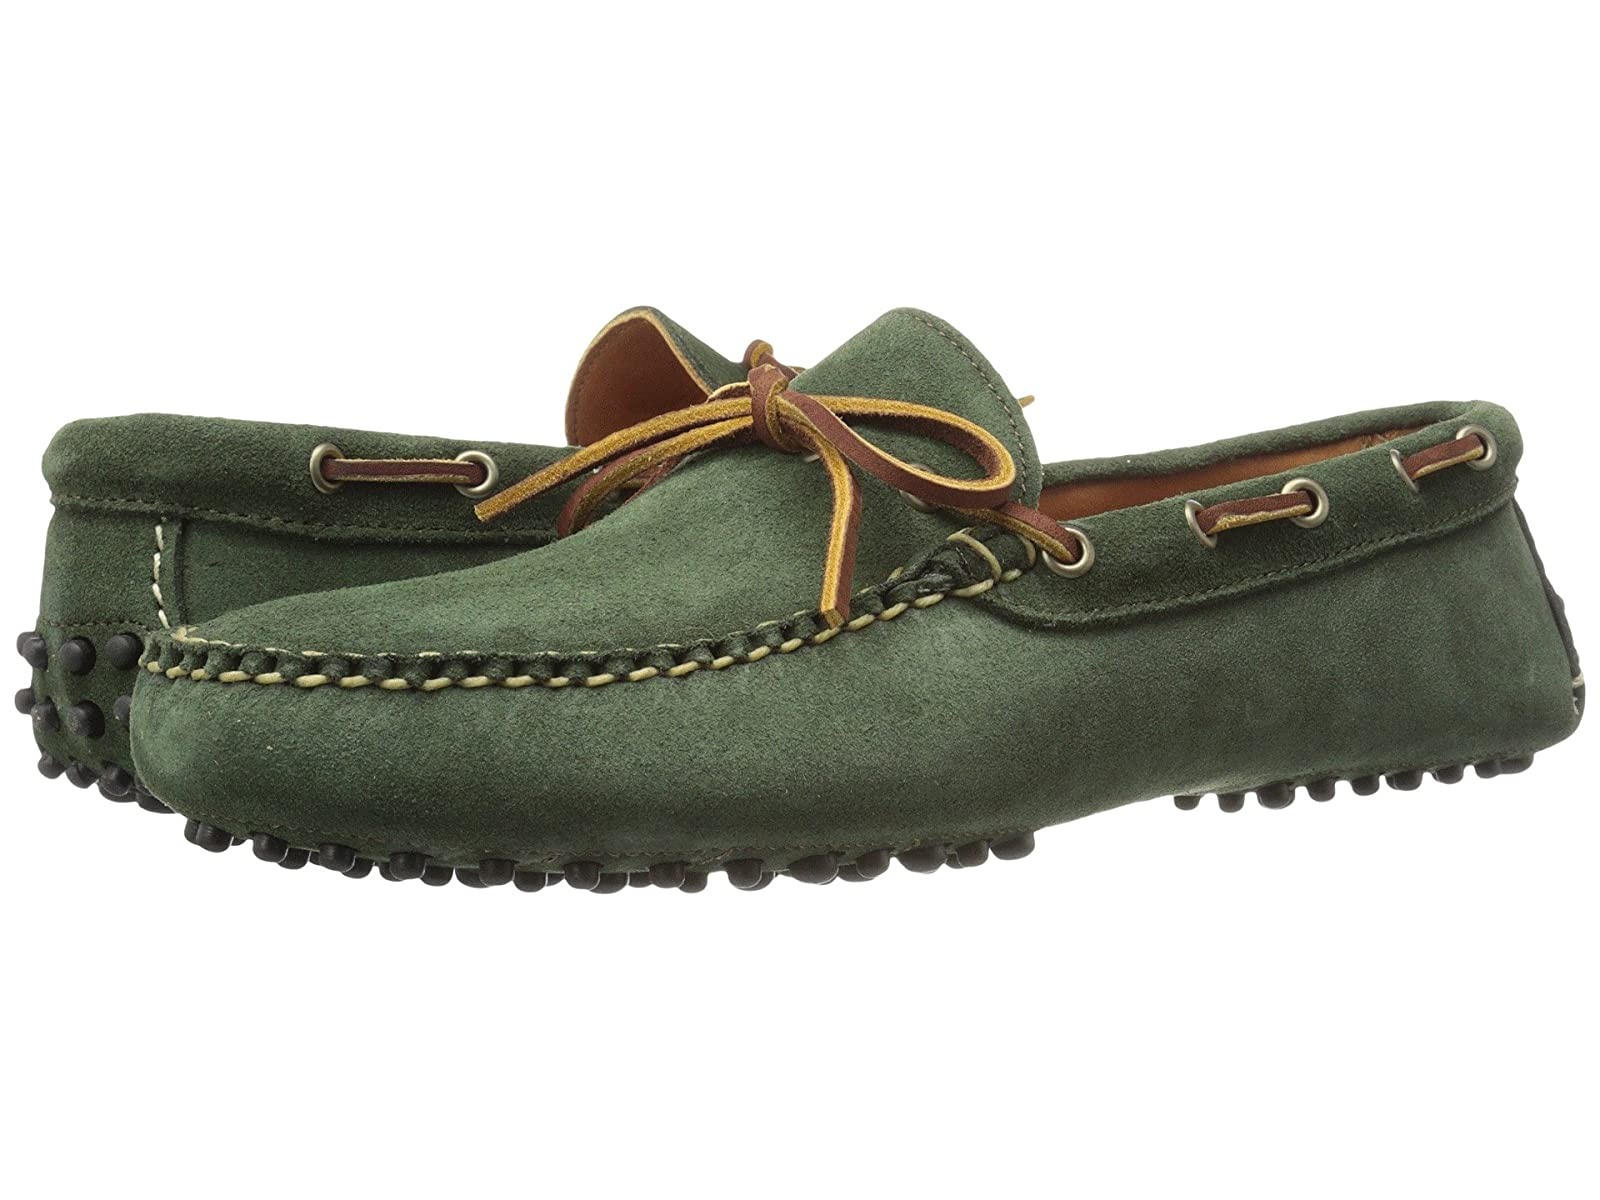 Eastland 1955 Edition Blanchard USACheap and distinctive eye-catching shoes